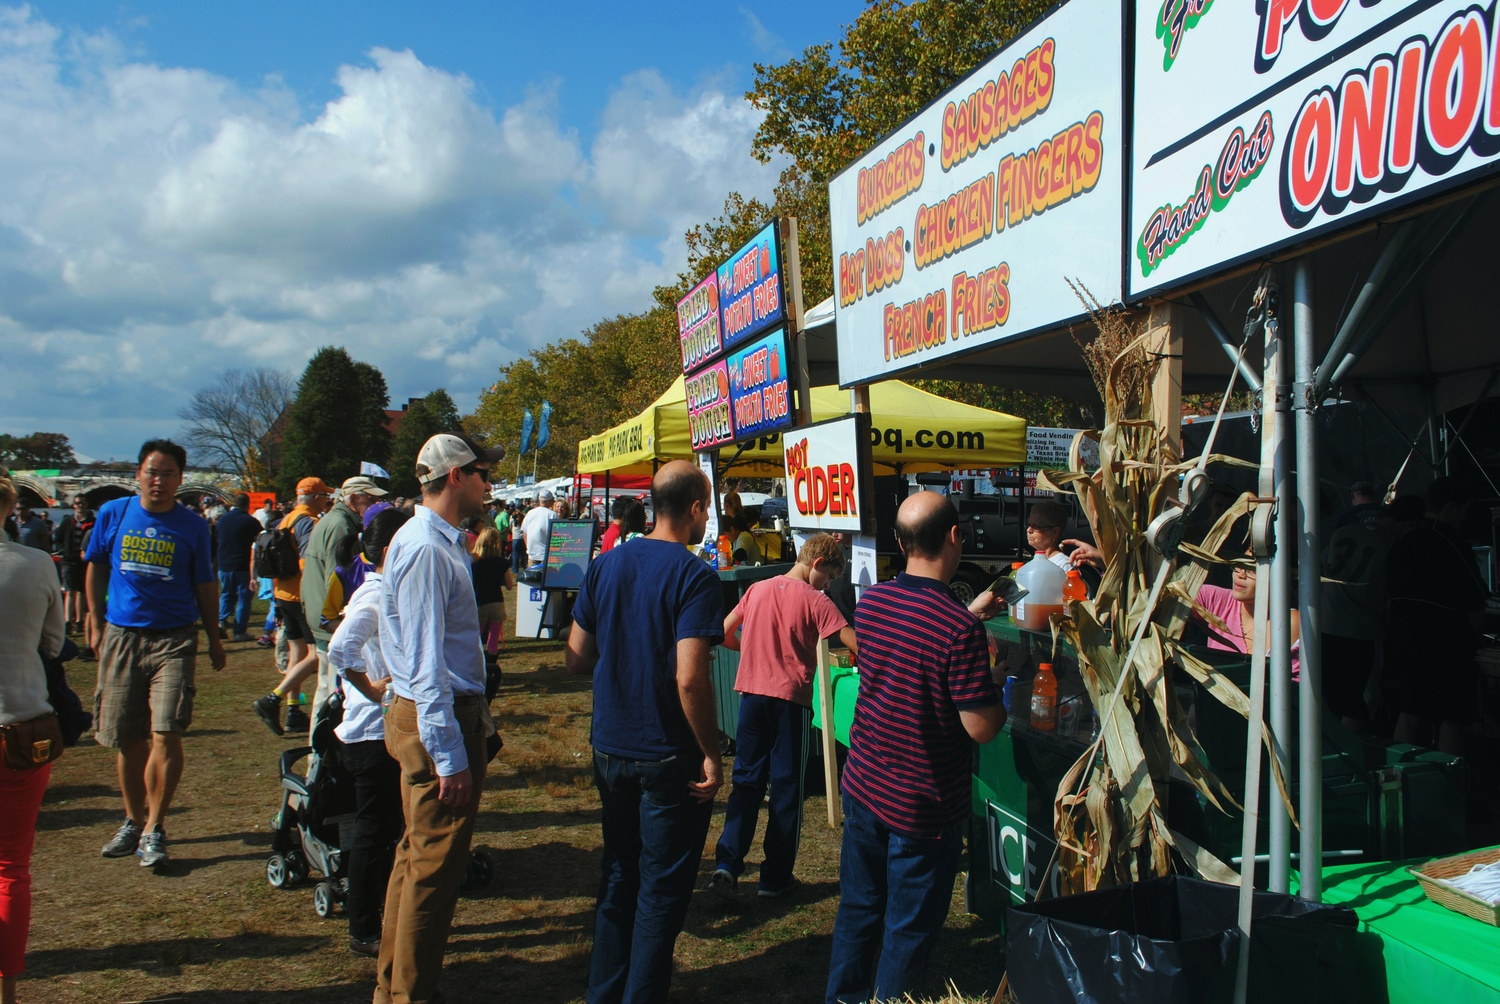 Hot cider, fried dough, and buttered lobster rolls were among the delicious offerings from HOCR food vendors.